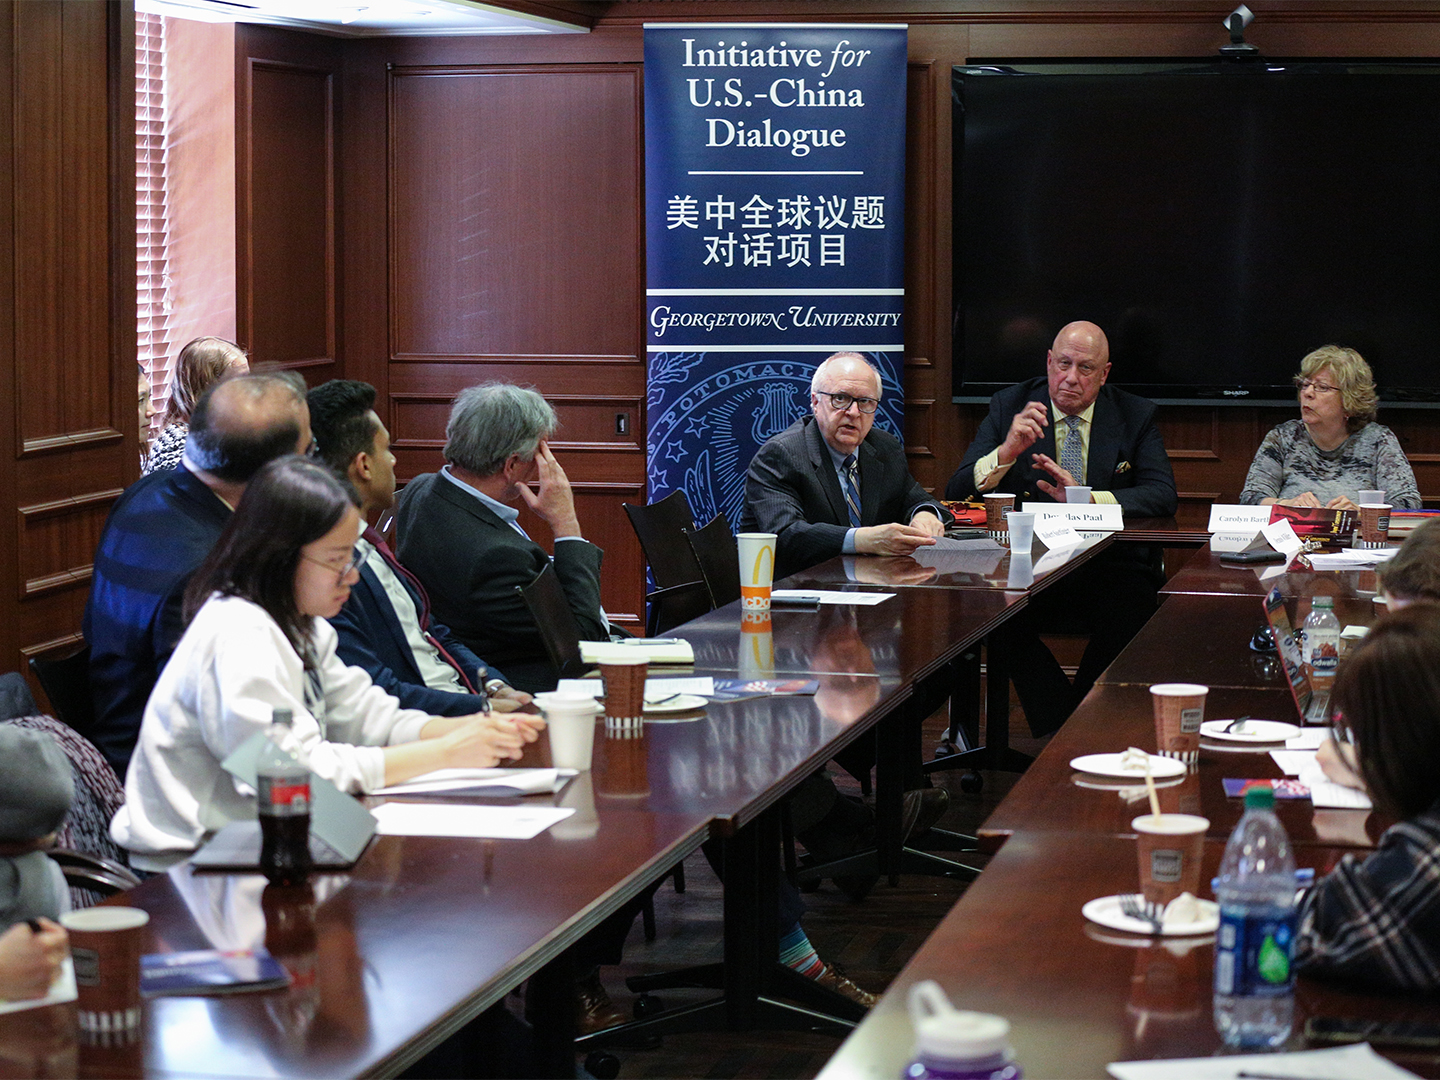 The speakers answer audience questions about prospects for future crisis management between the U.S. and China.